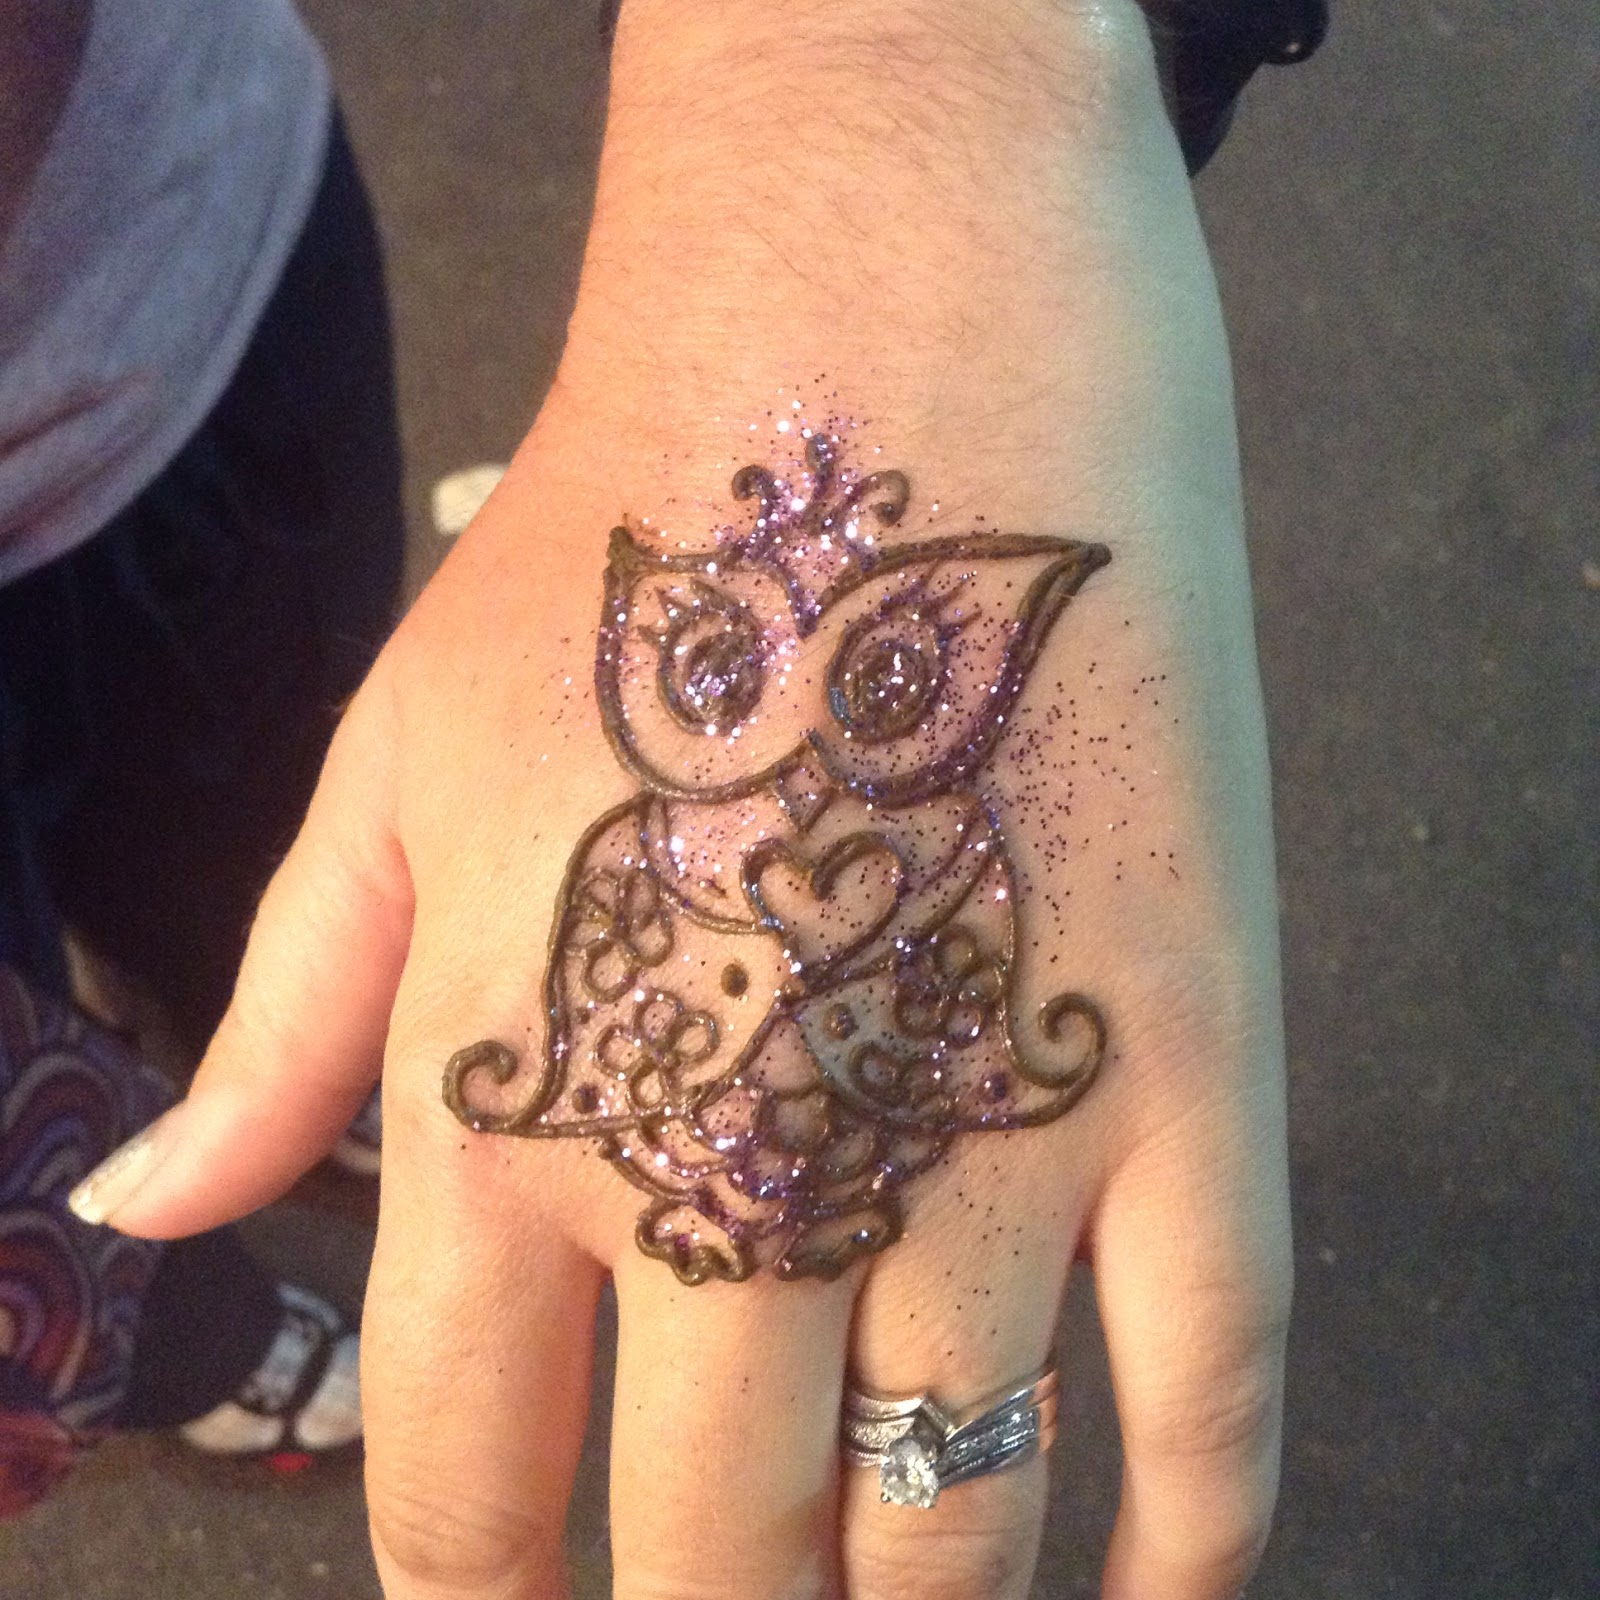 Stacie39s Place II Owls Henna Tattoos Food Hypnotists Amp More